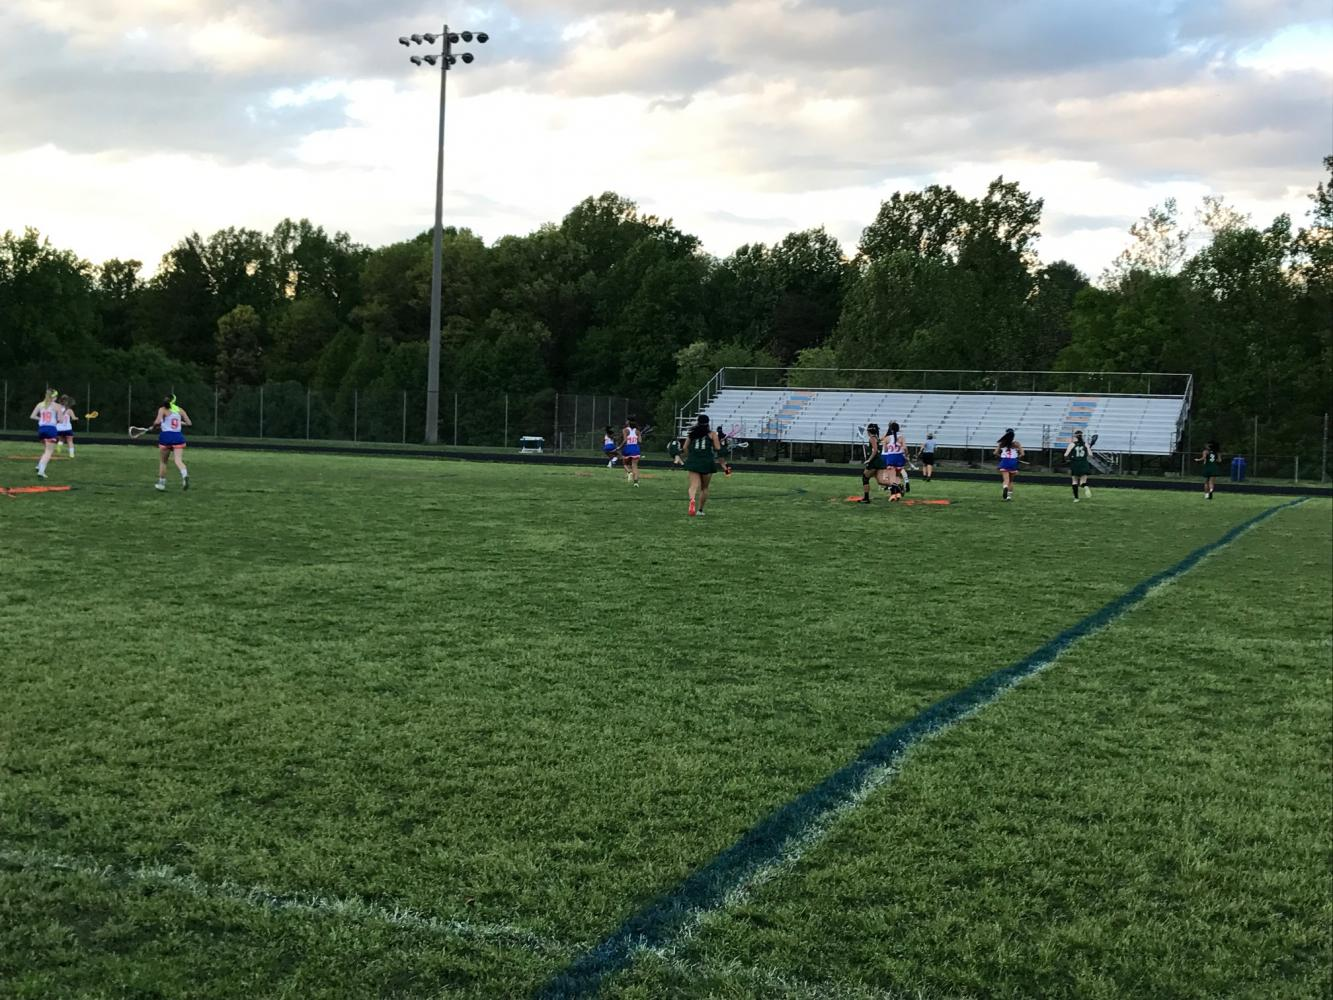 Girl's lacrosse in the middle of a game.